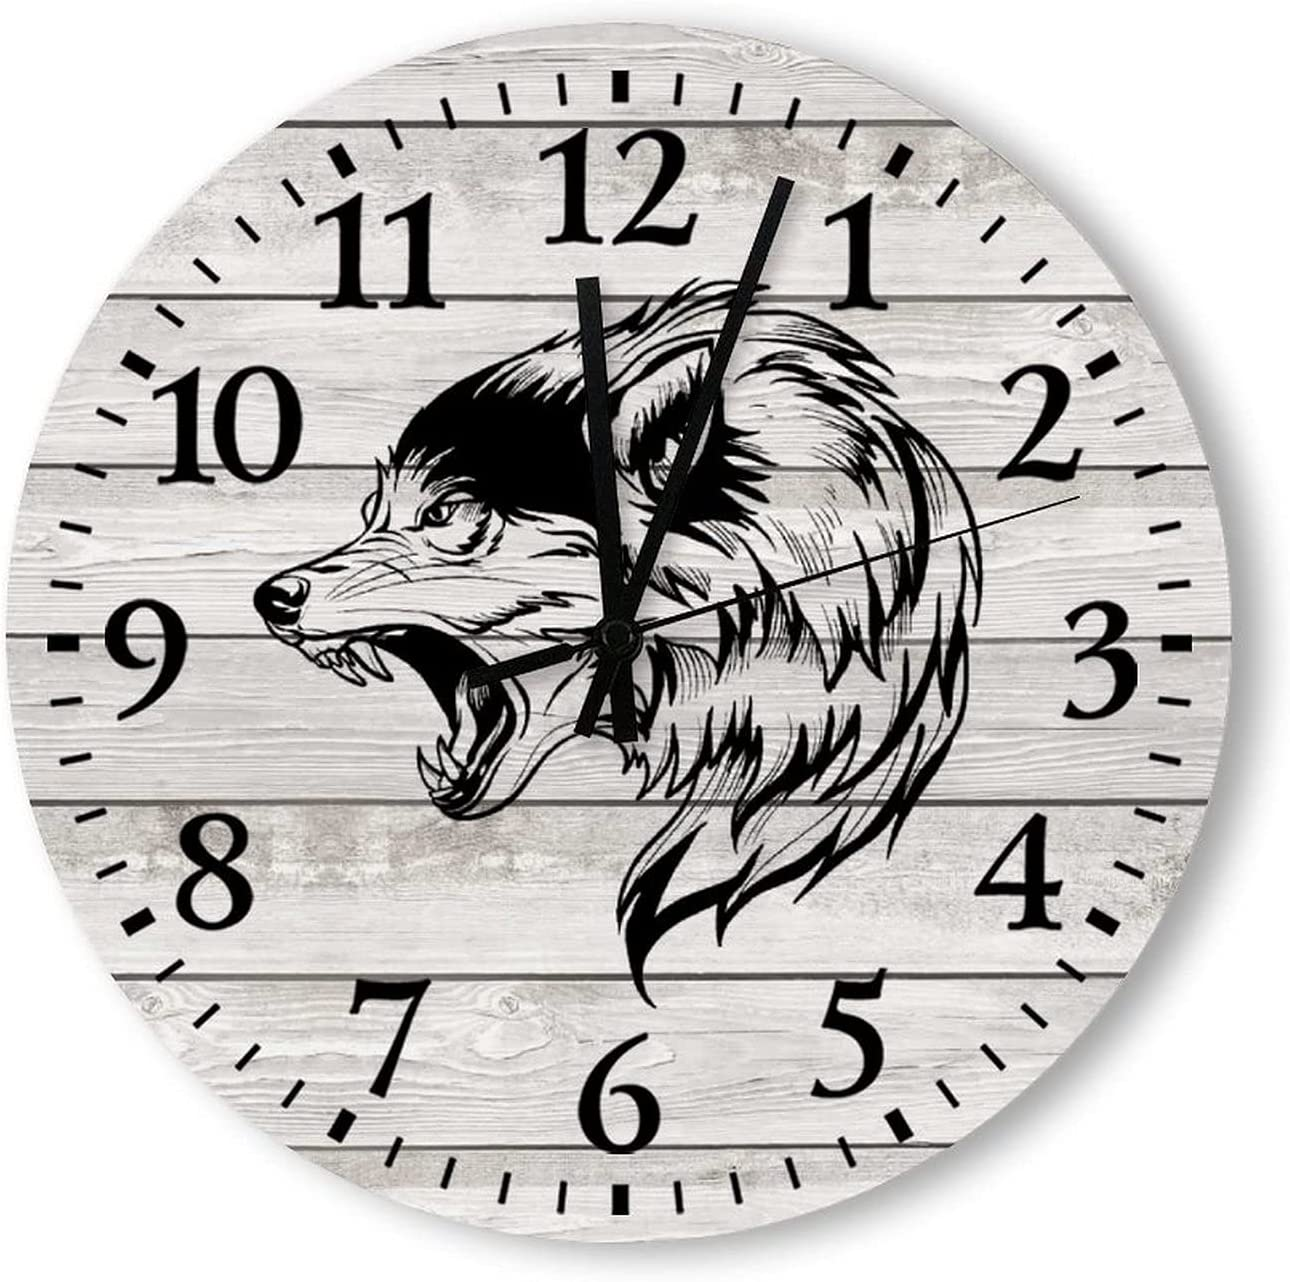 Wood Wall Clock - Wolf Head Style Rustic 14 Max 76% OFF Max 65% OFF 12 inch Country